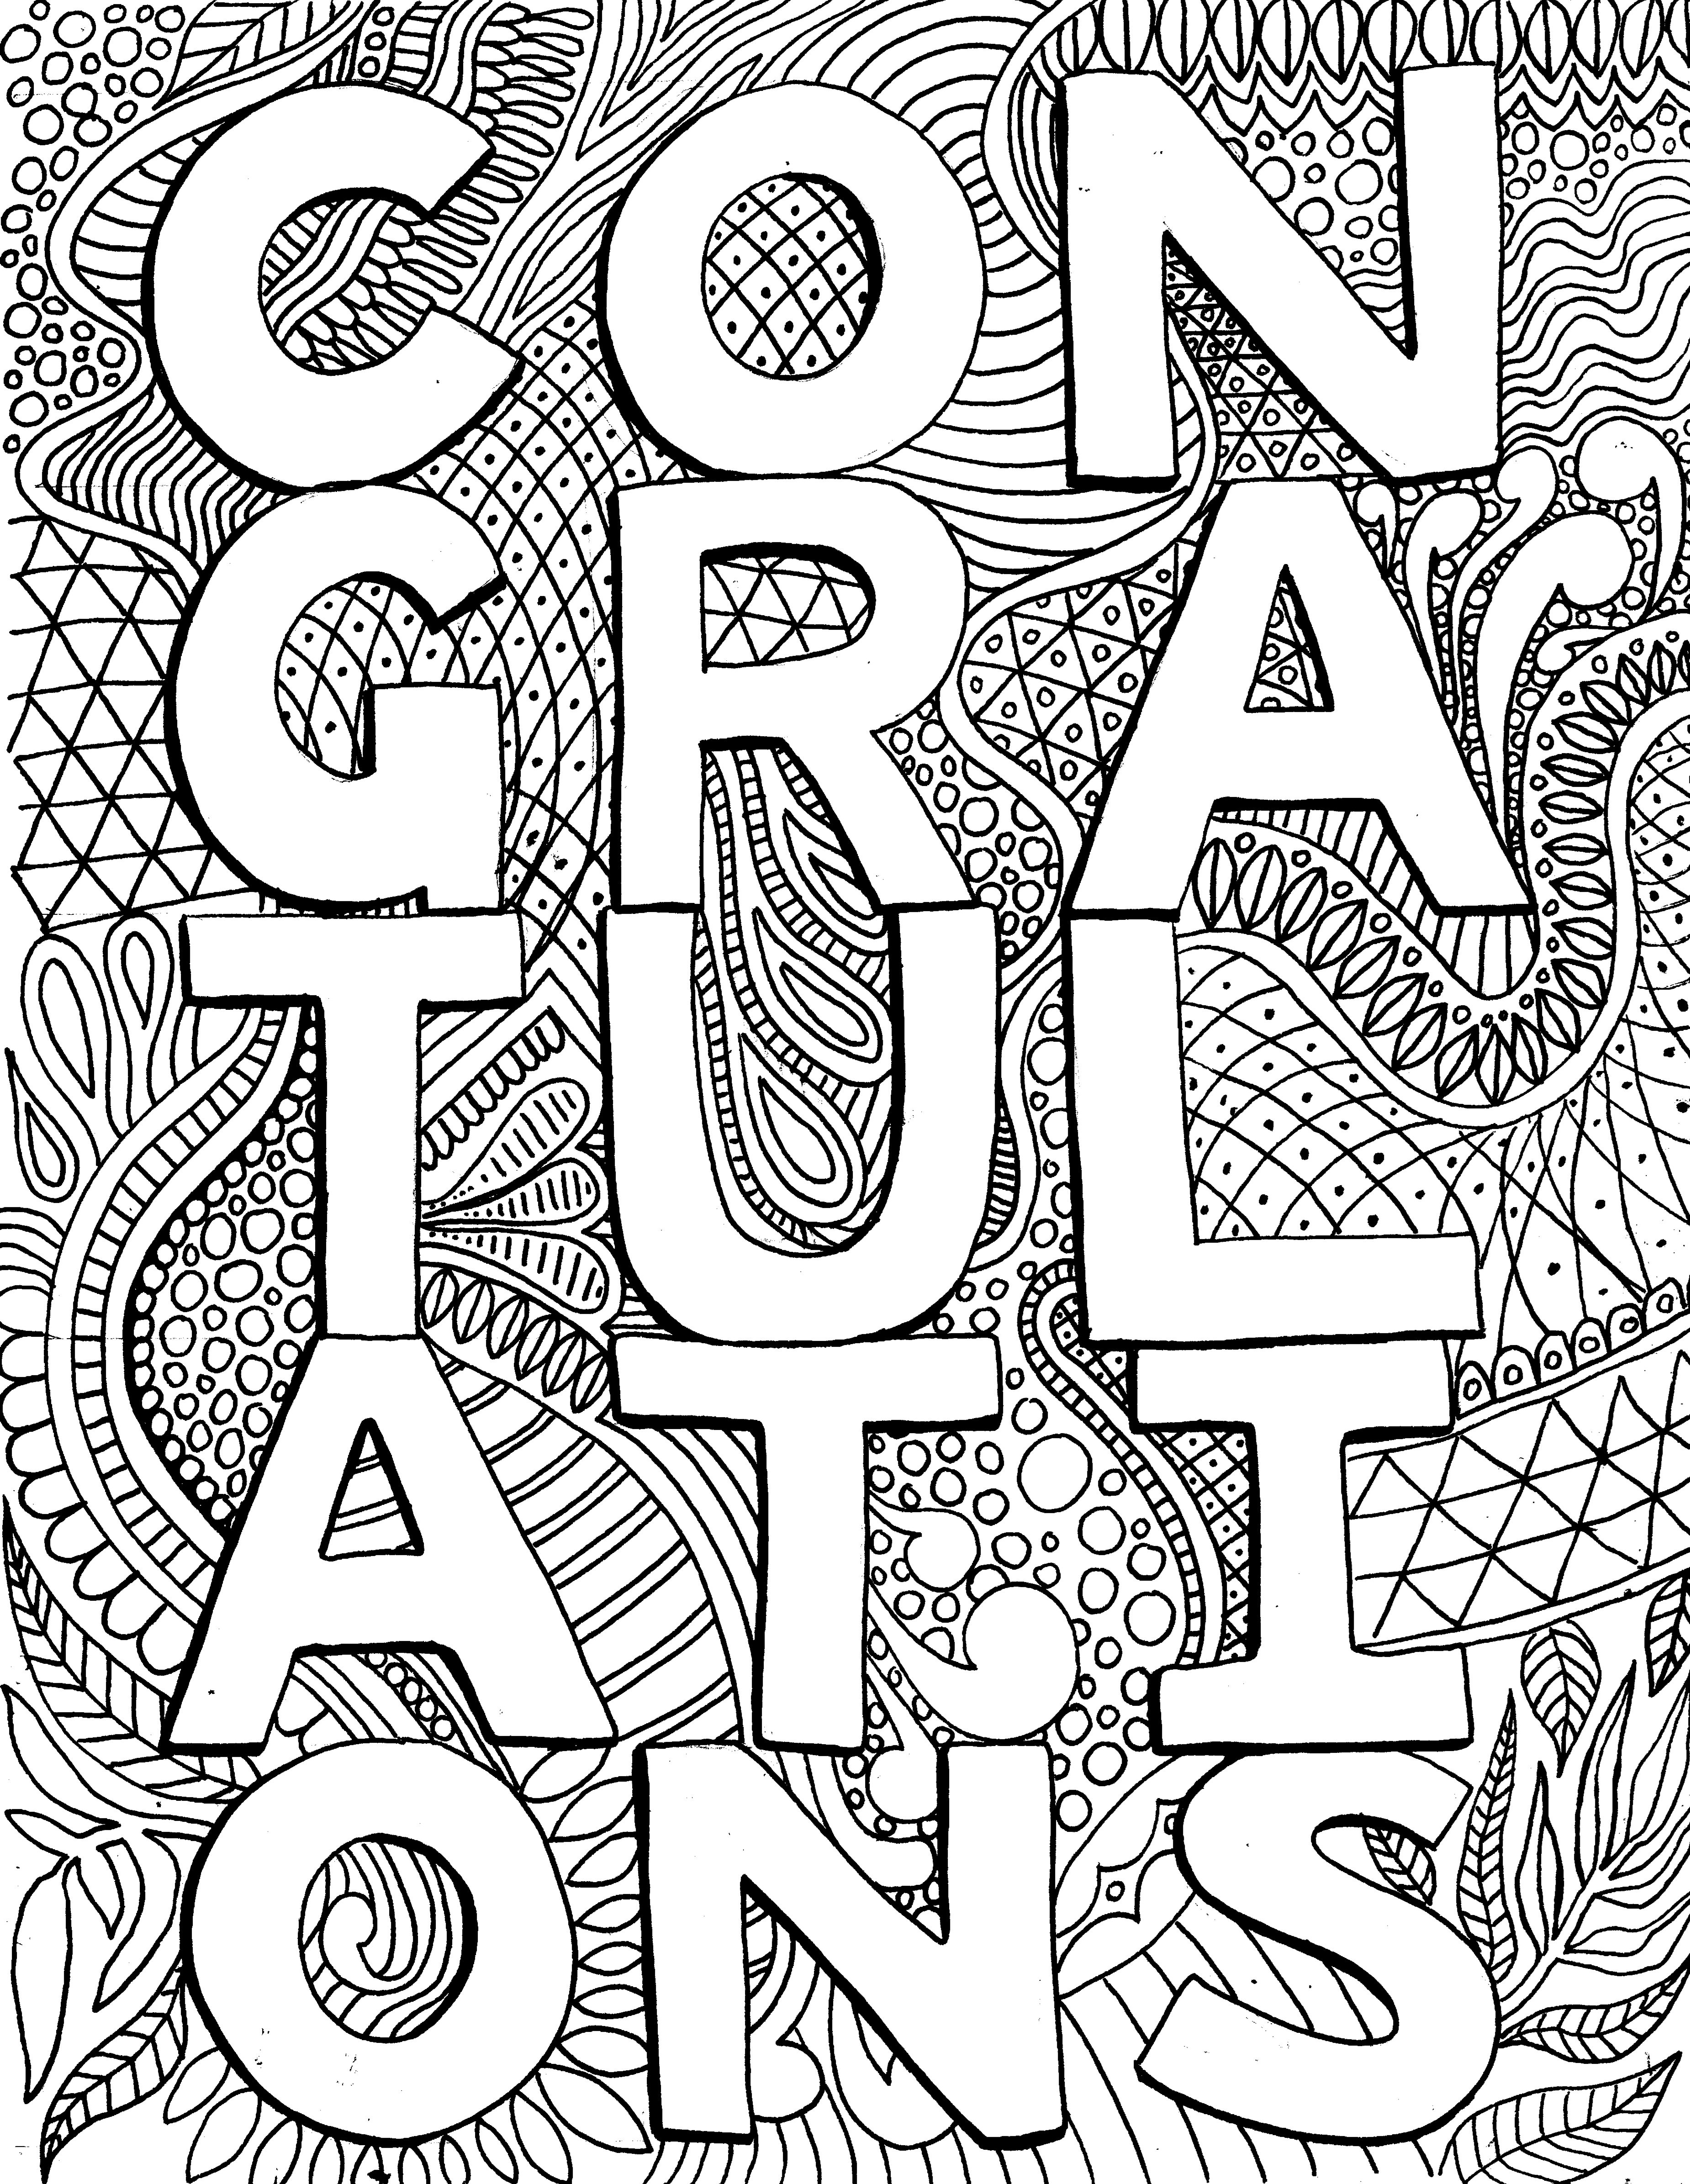 Congratulations! Free Printable - From Victory Road